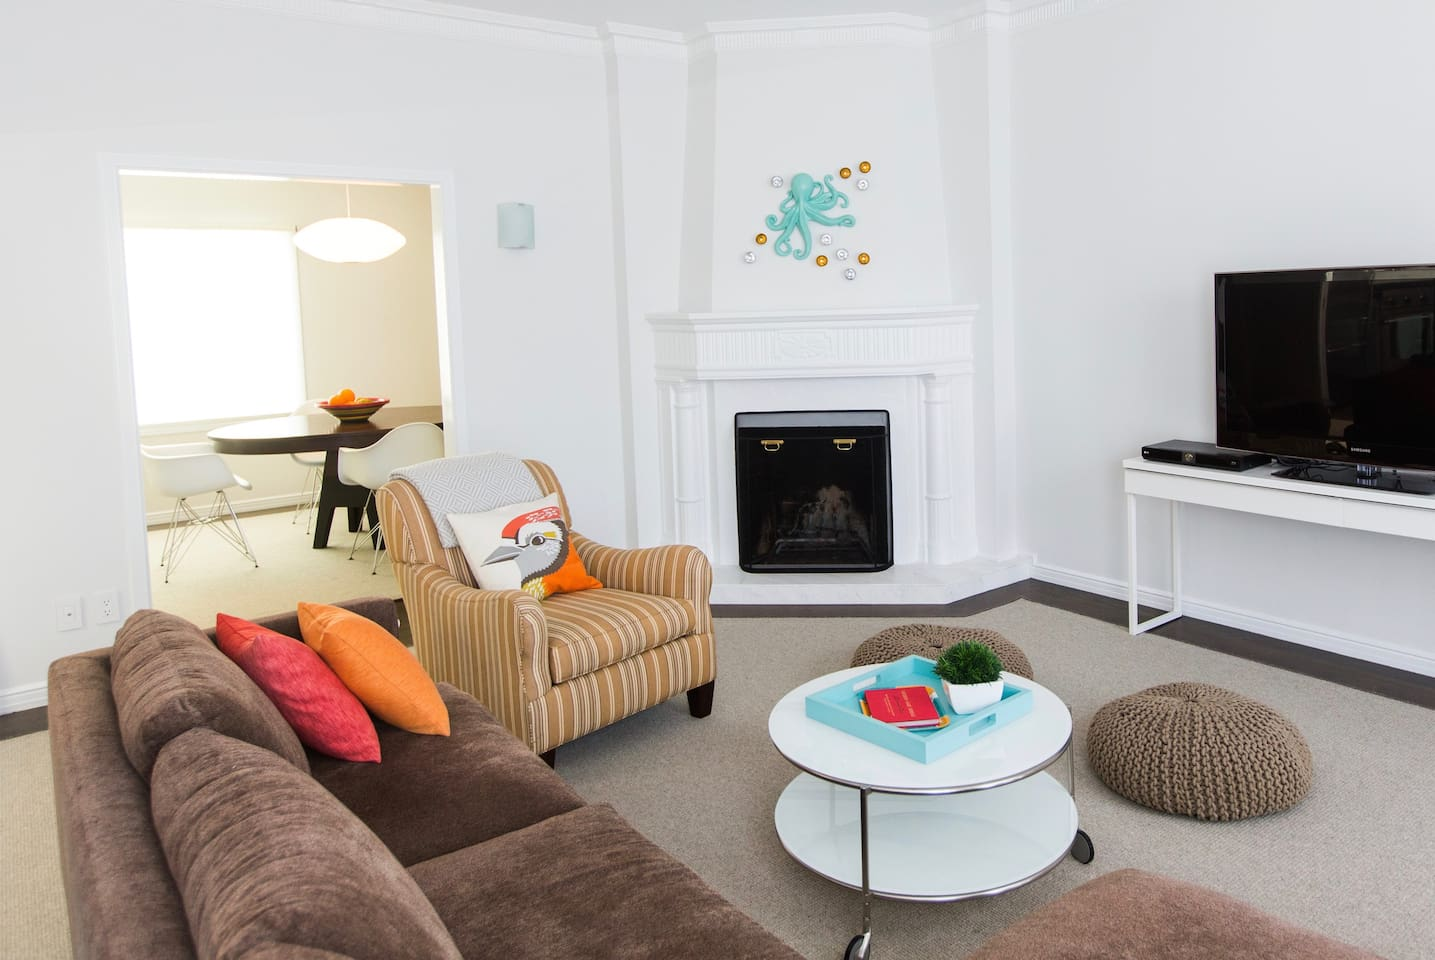 Our comfy, light-filled flat is 1700 sq. feet and newly redone.